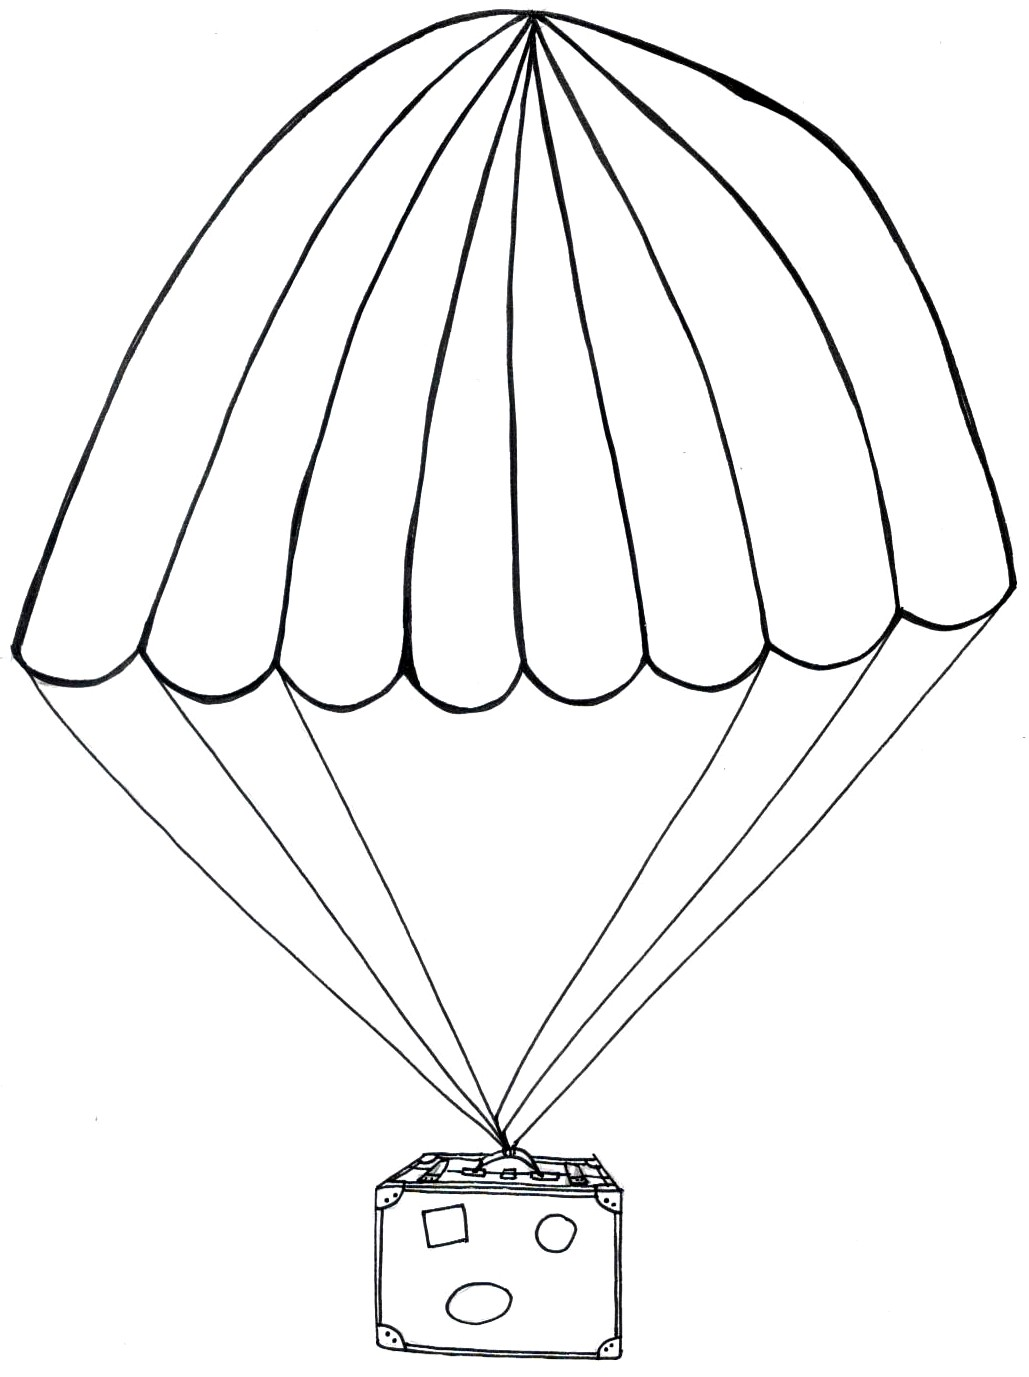 People Parachuting Coloring Coloring Pages